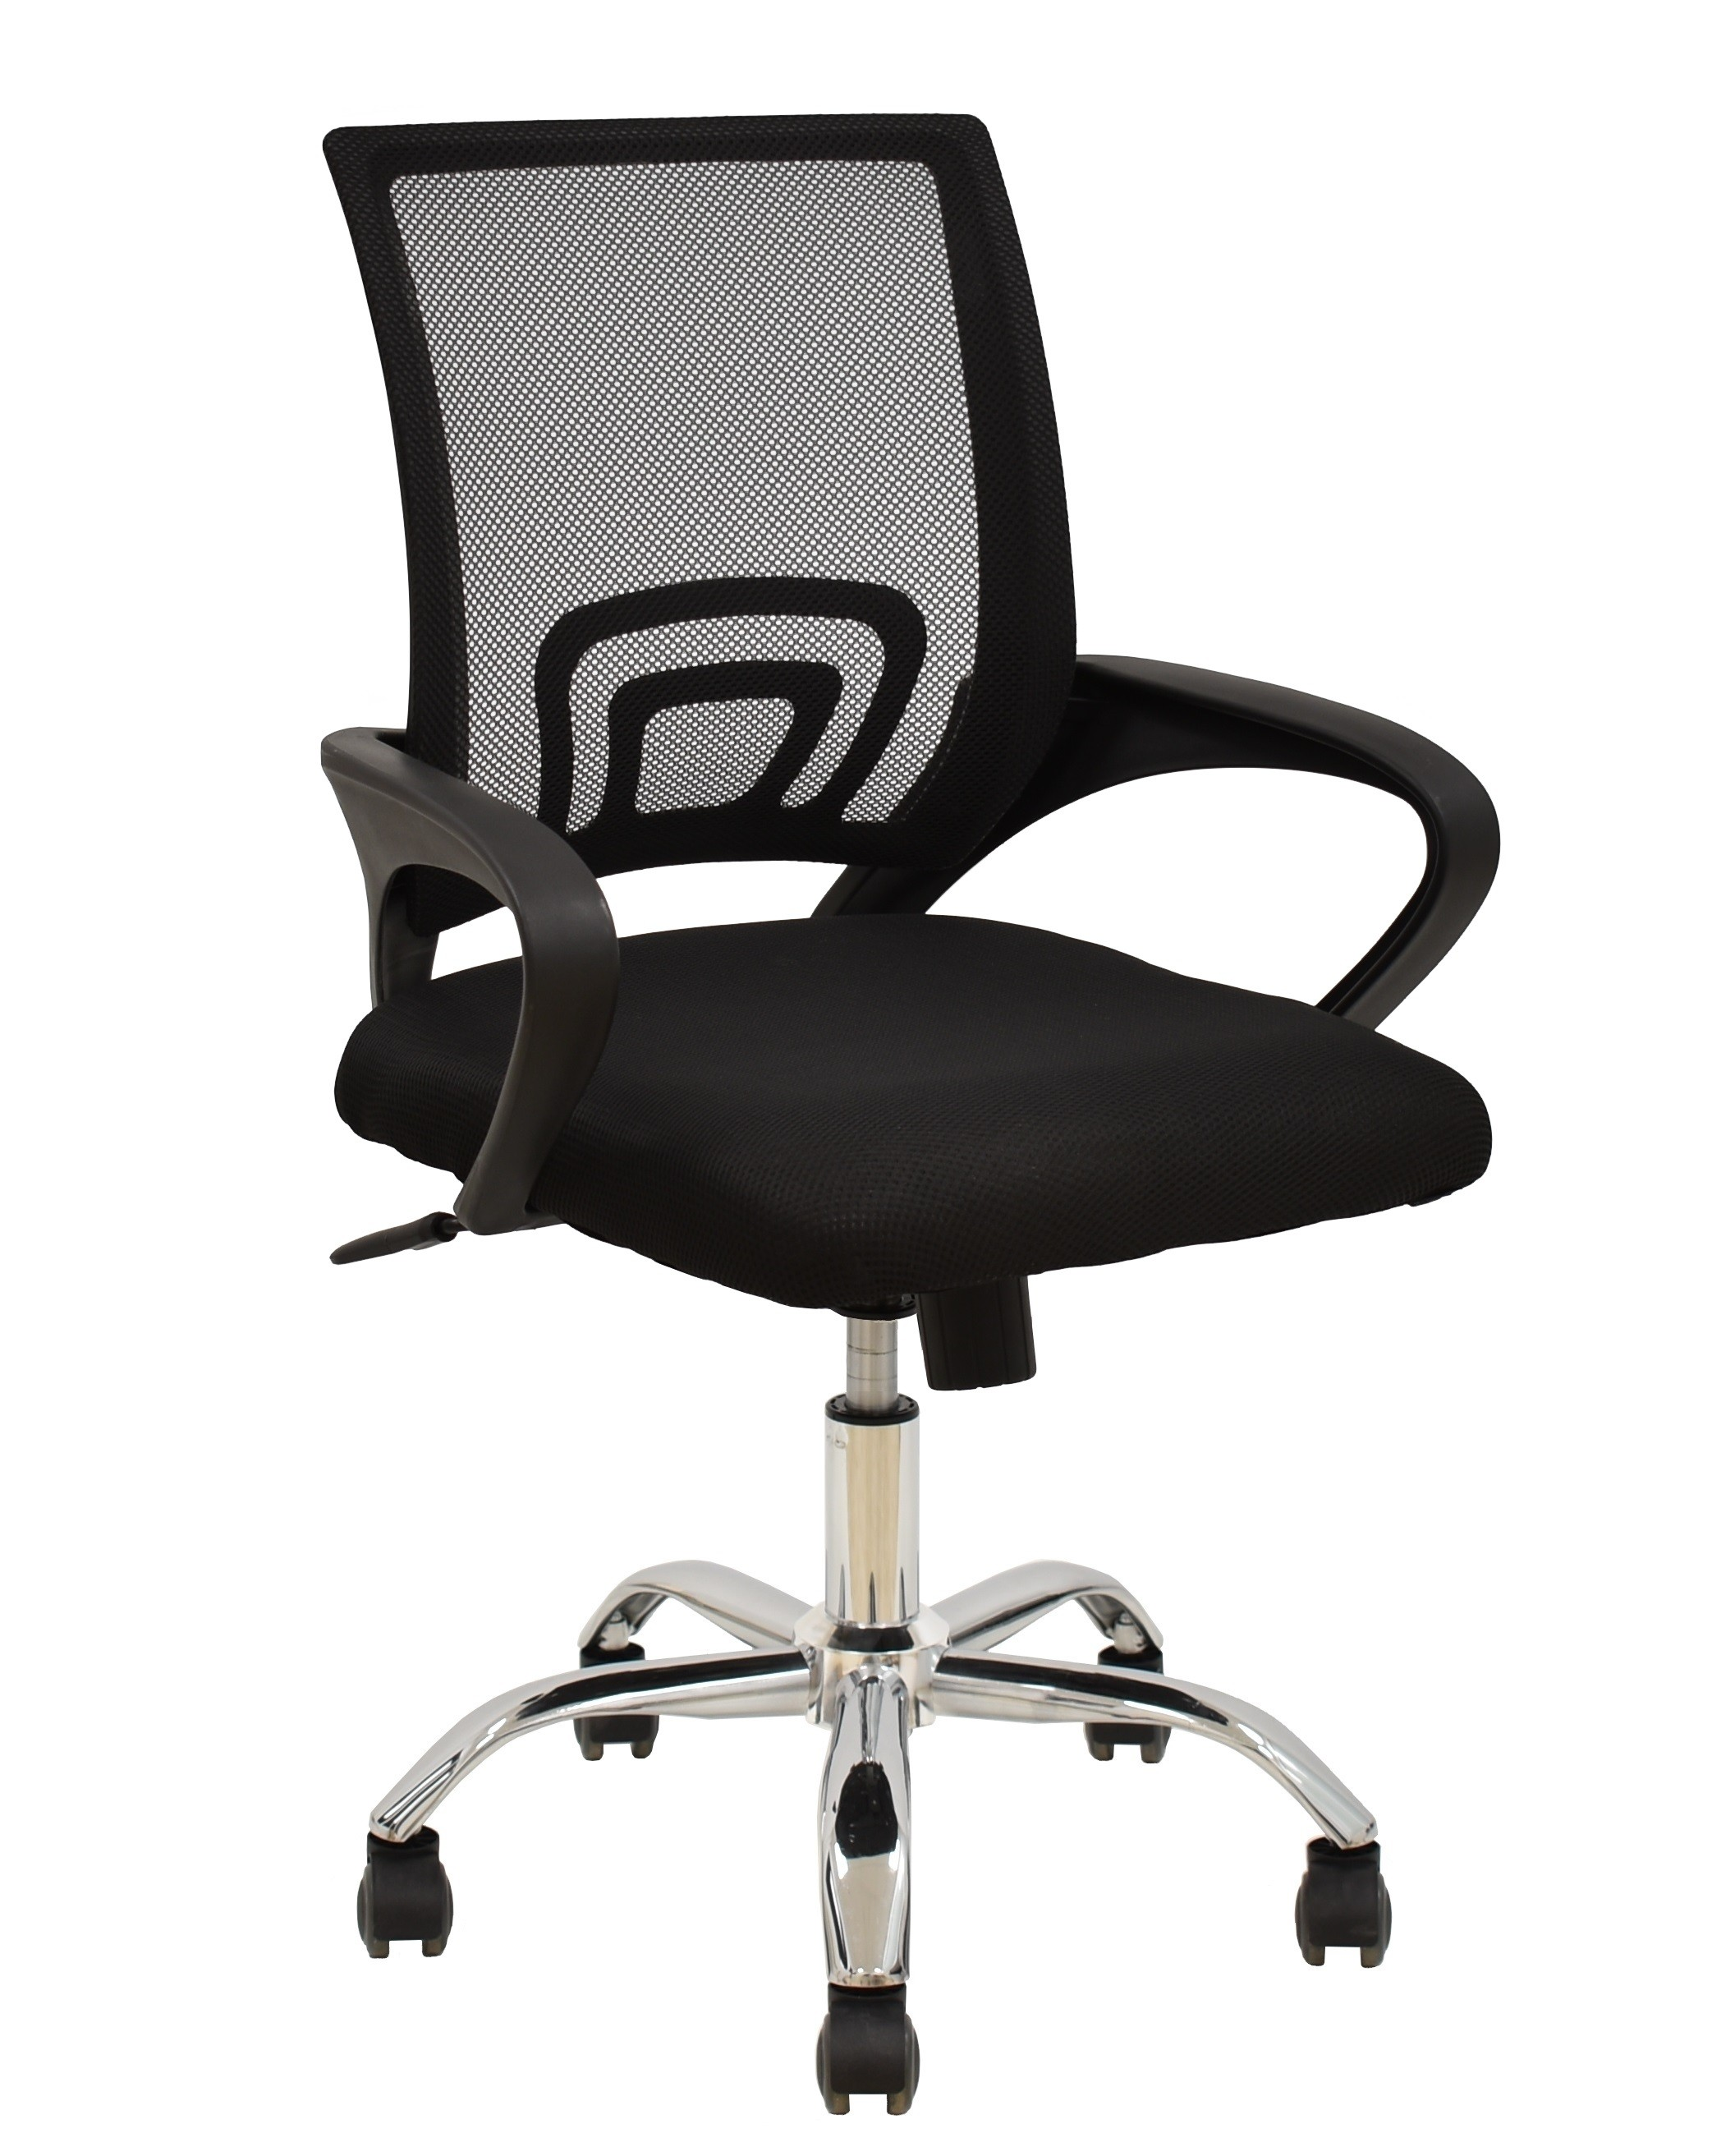 Office Armchair FISS NEW, Black, Gas, Rocker, Mesh And Black Fabric